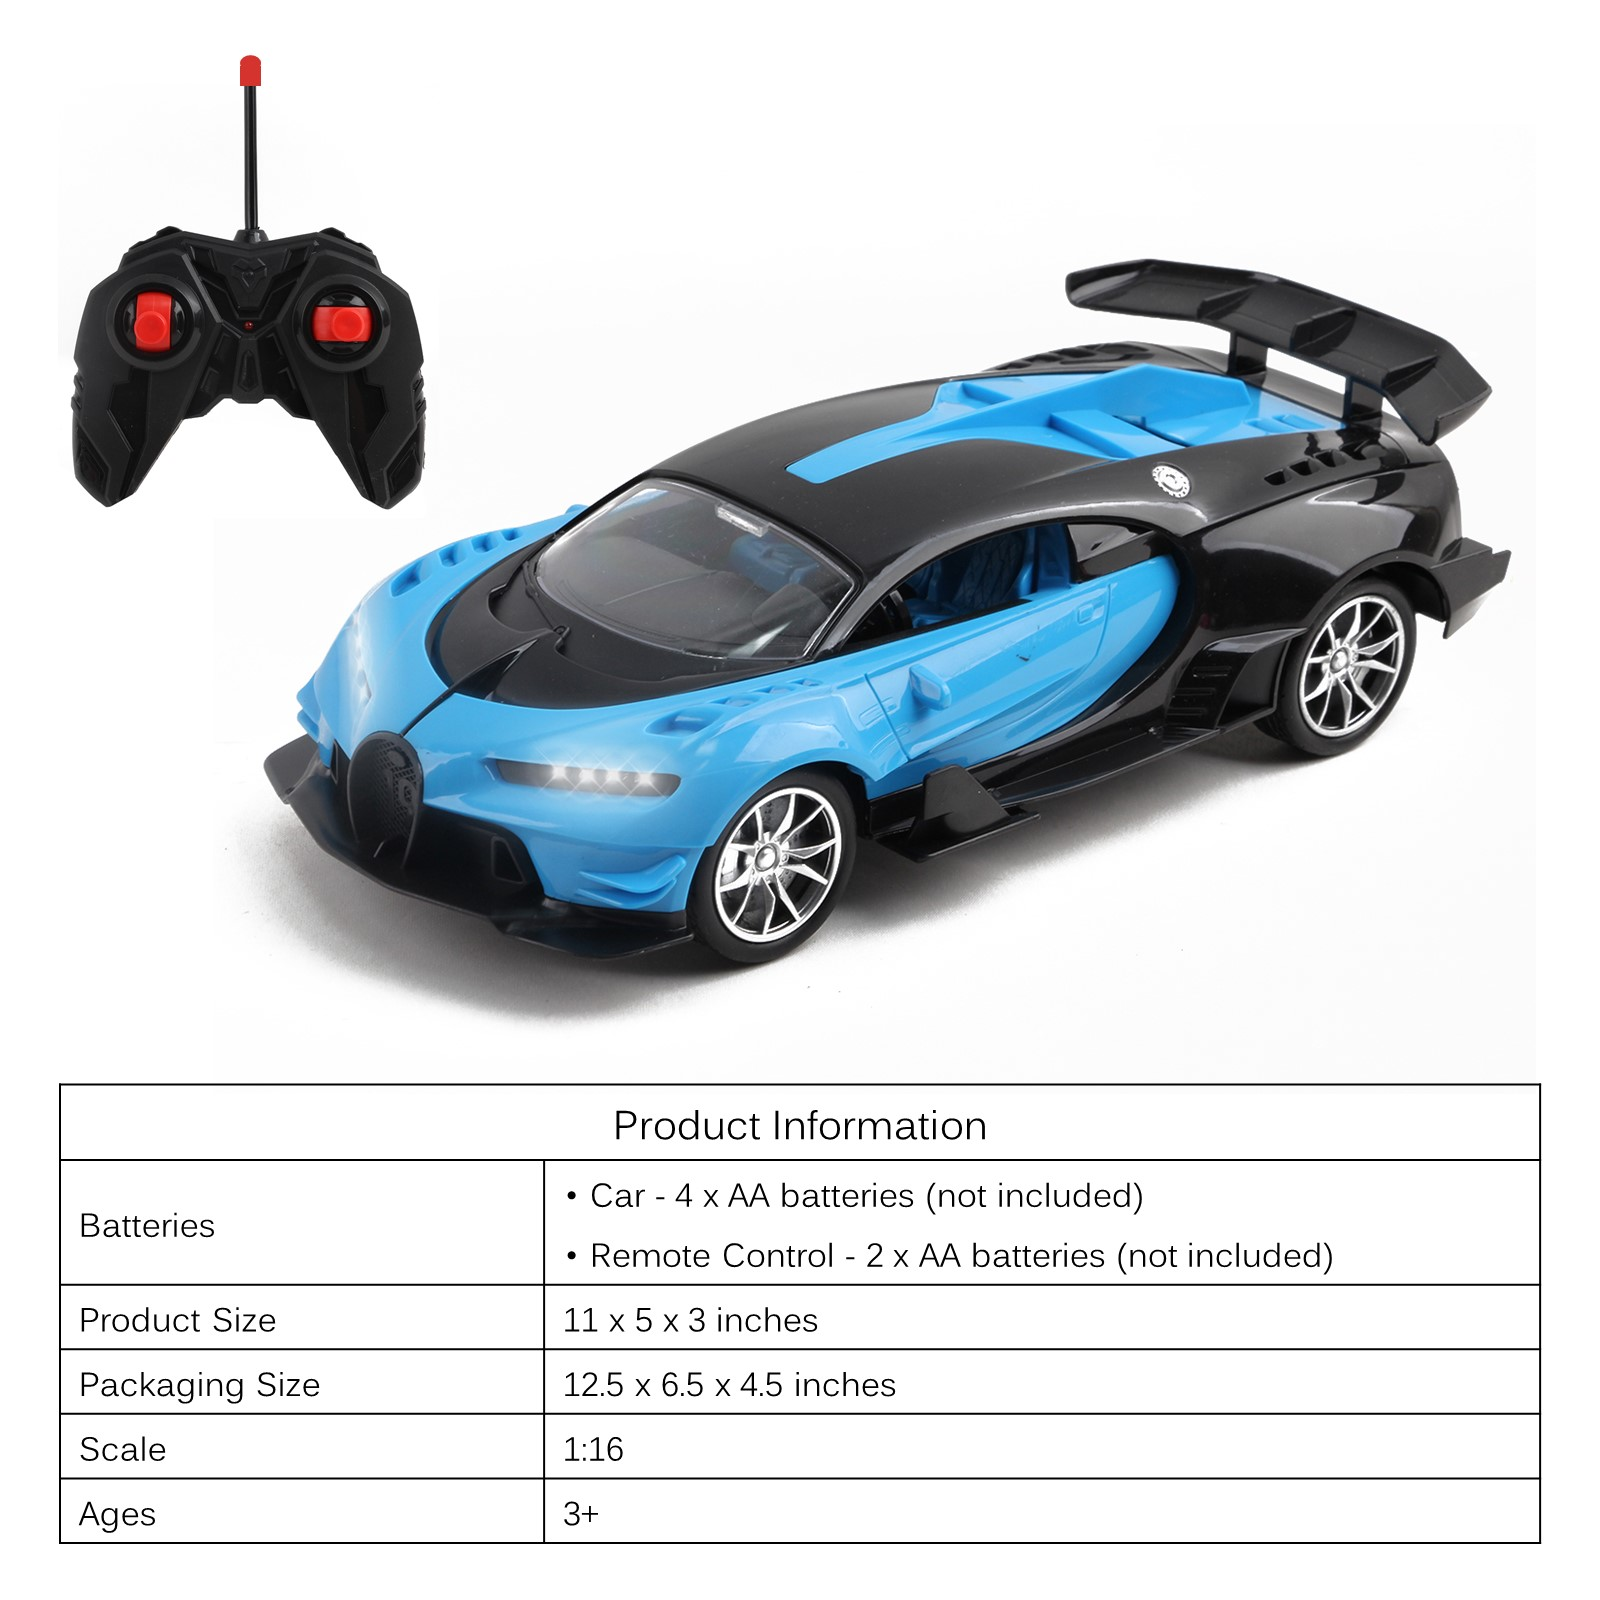 Vokodo RC Super Car 116 Scale Remote Control Full Function with Functional LED Headlights Easy to Operate Kids Toy Quality Race Vehicle Perfect Exotic Sports Model Great Gift for Children Boys Girls